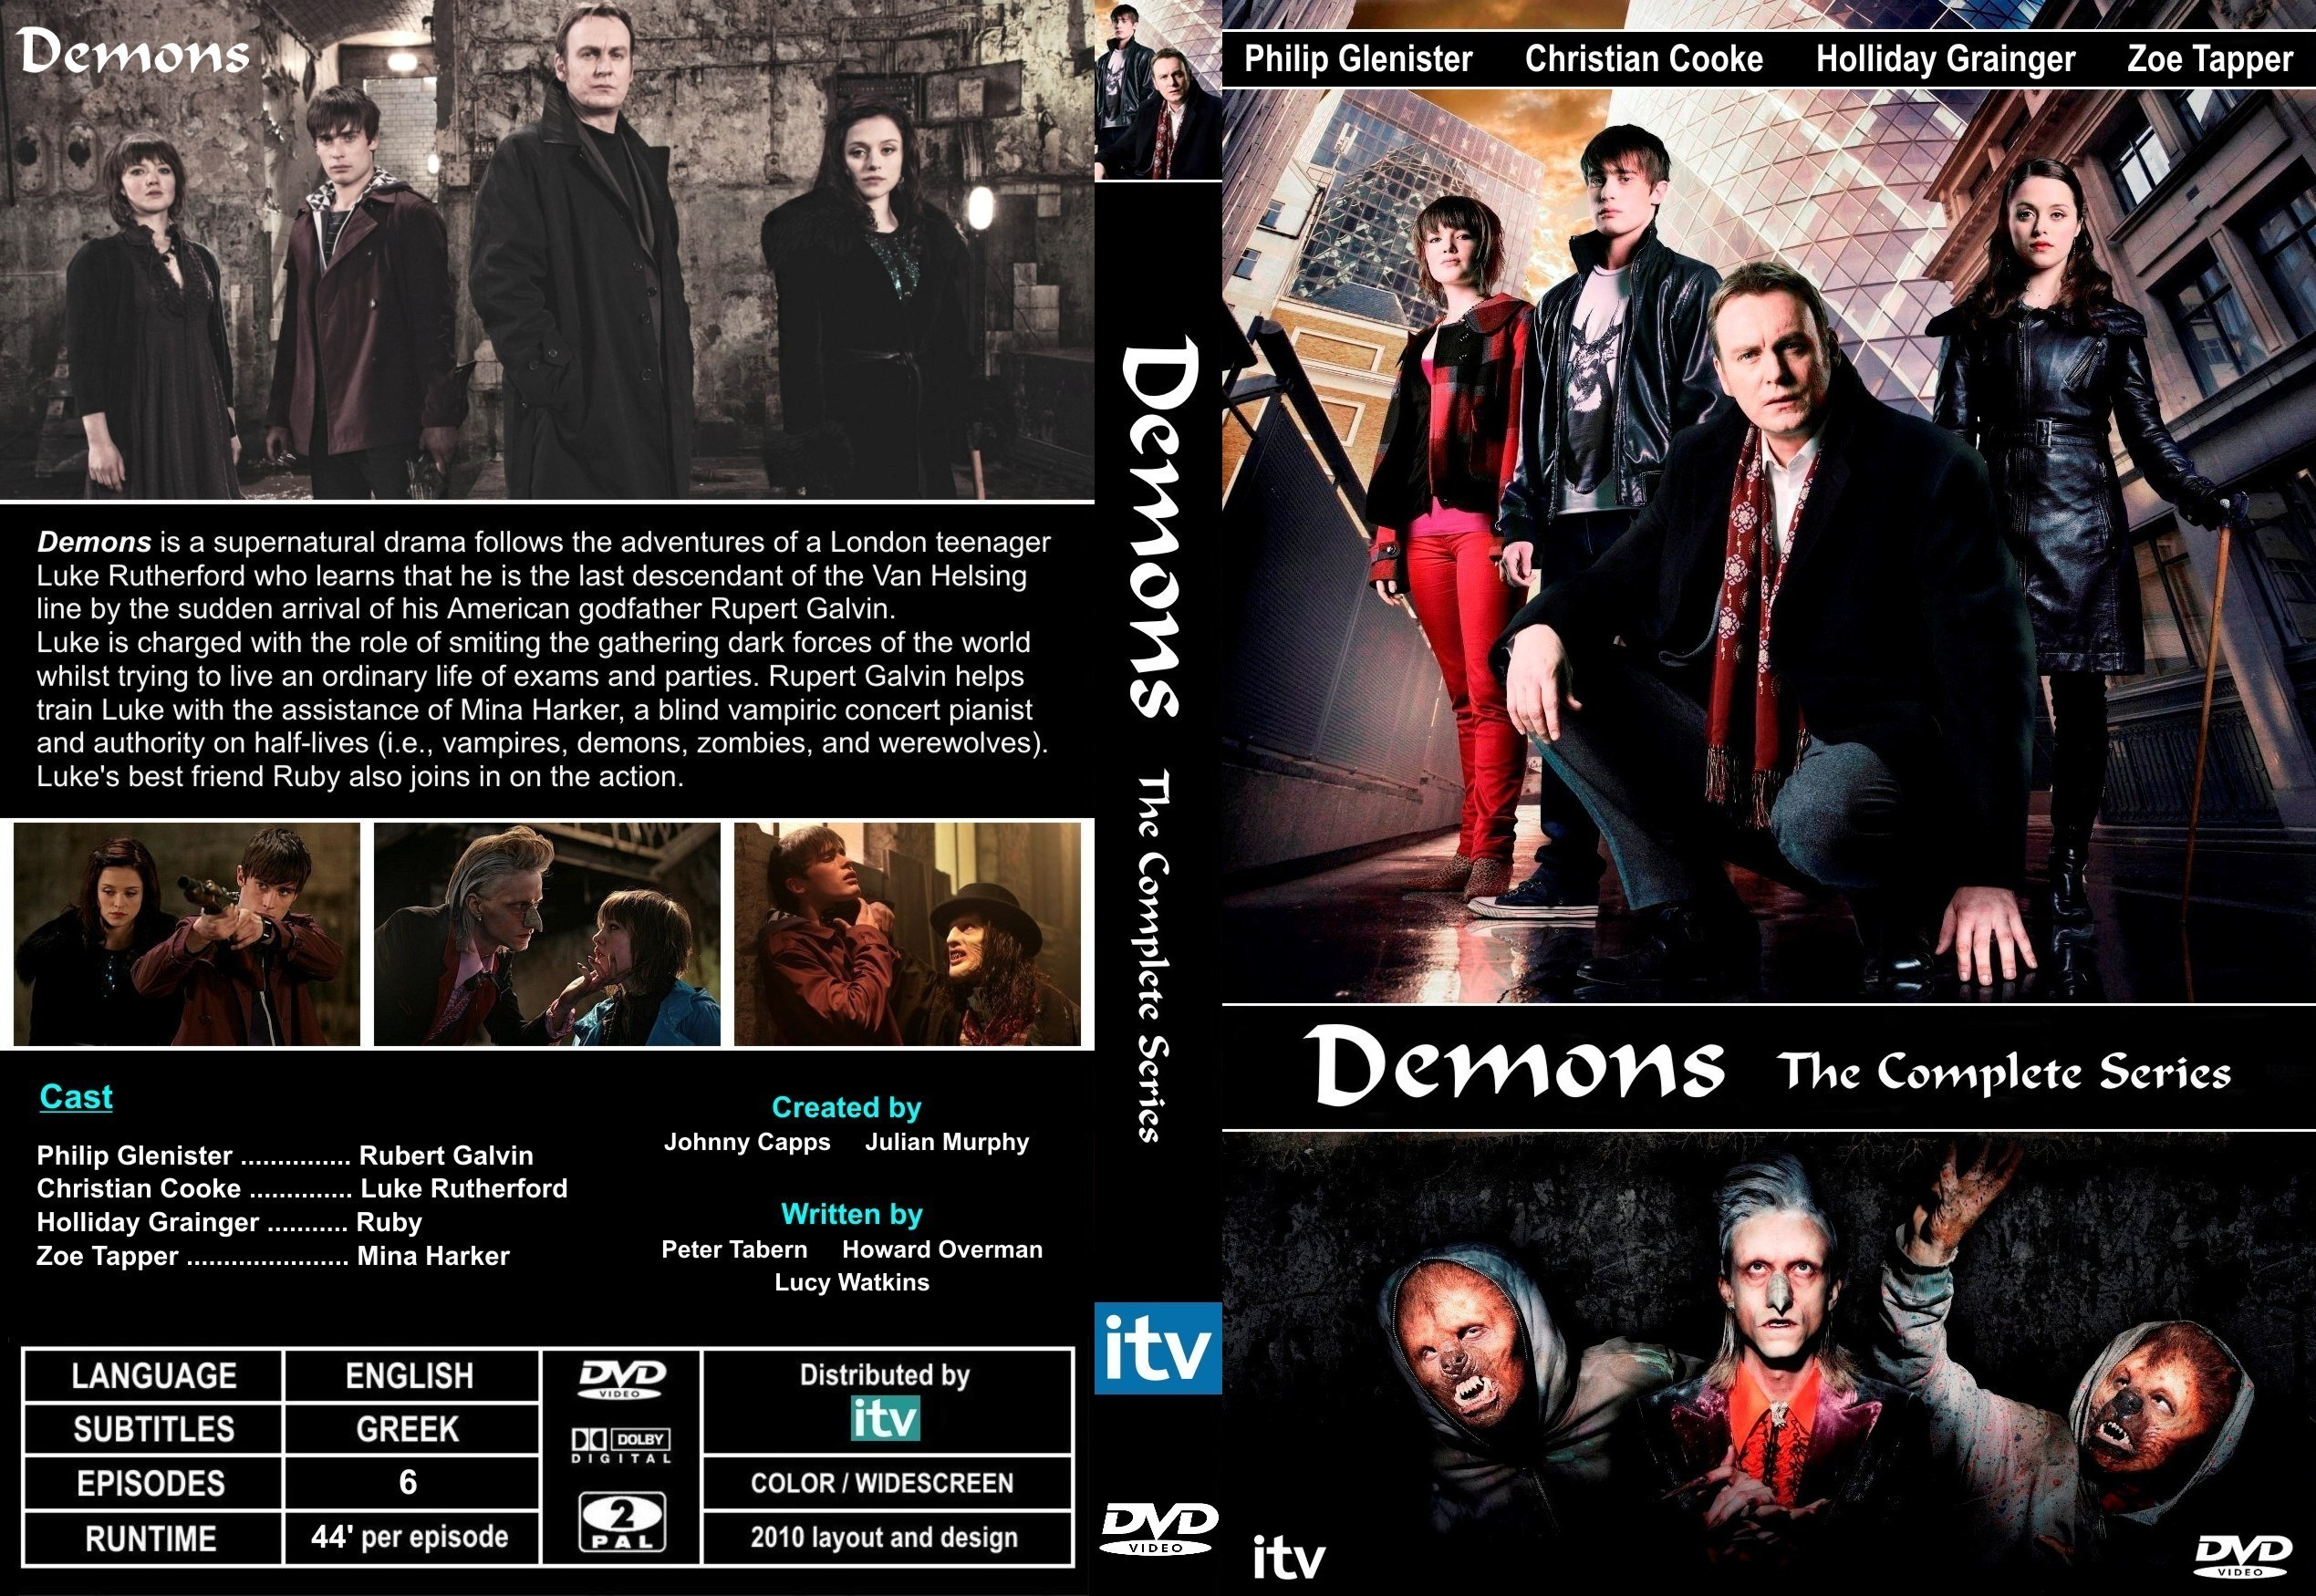 Book Cover Series Imdb : Covers box sk demons imdb dl high quality dvd